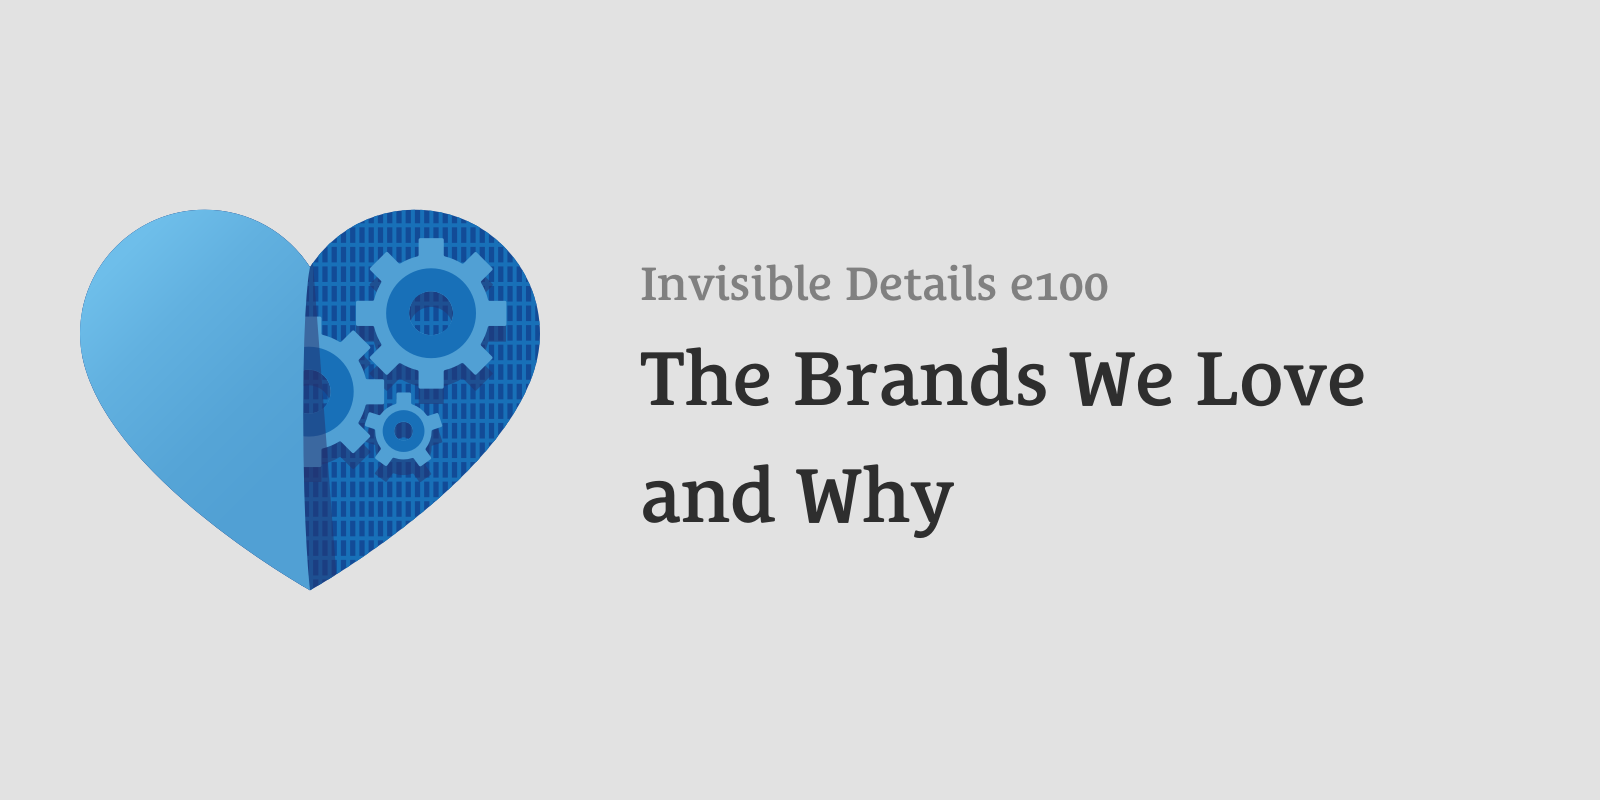 The Brands We Love and Why